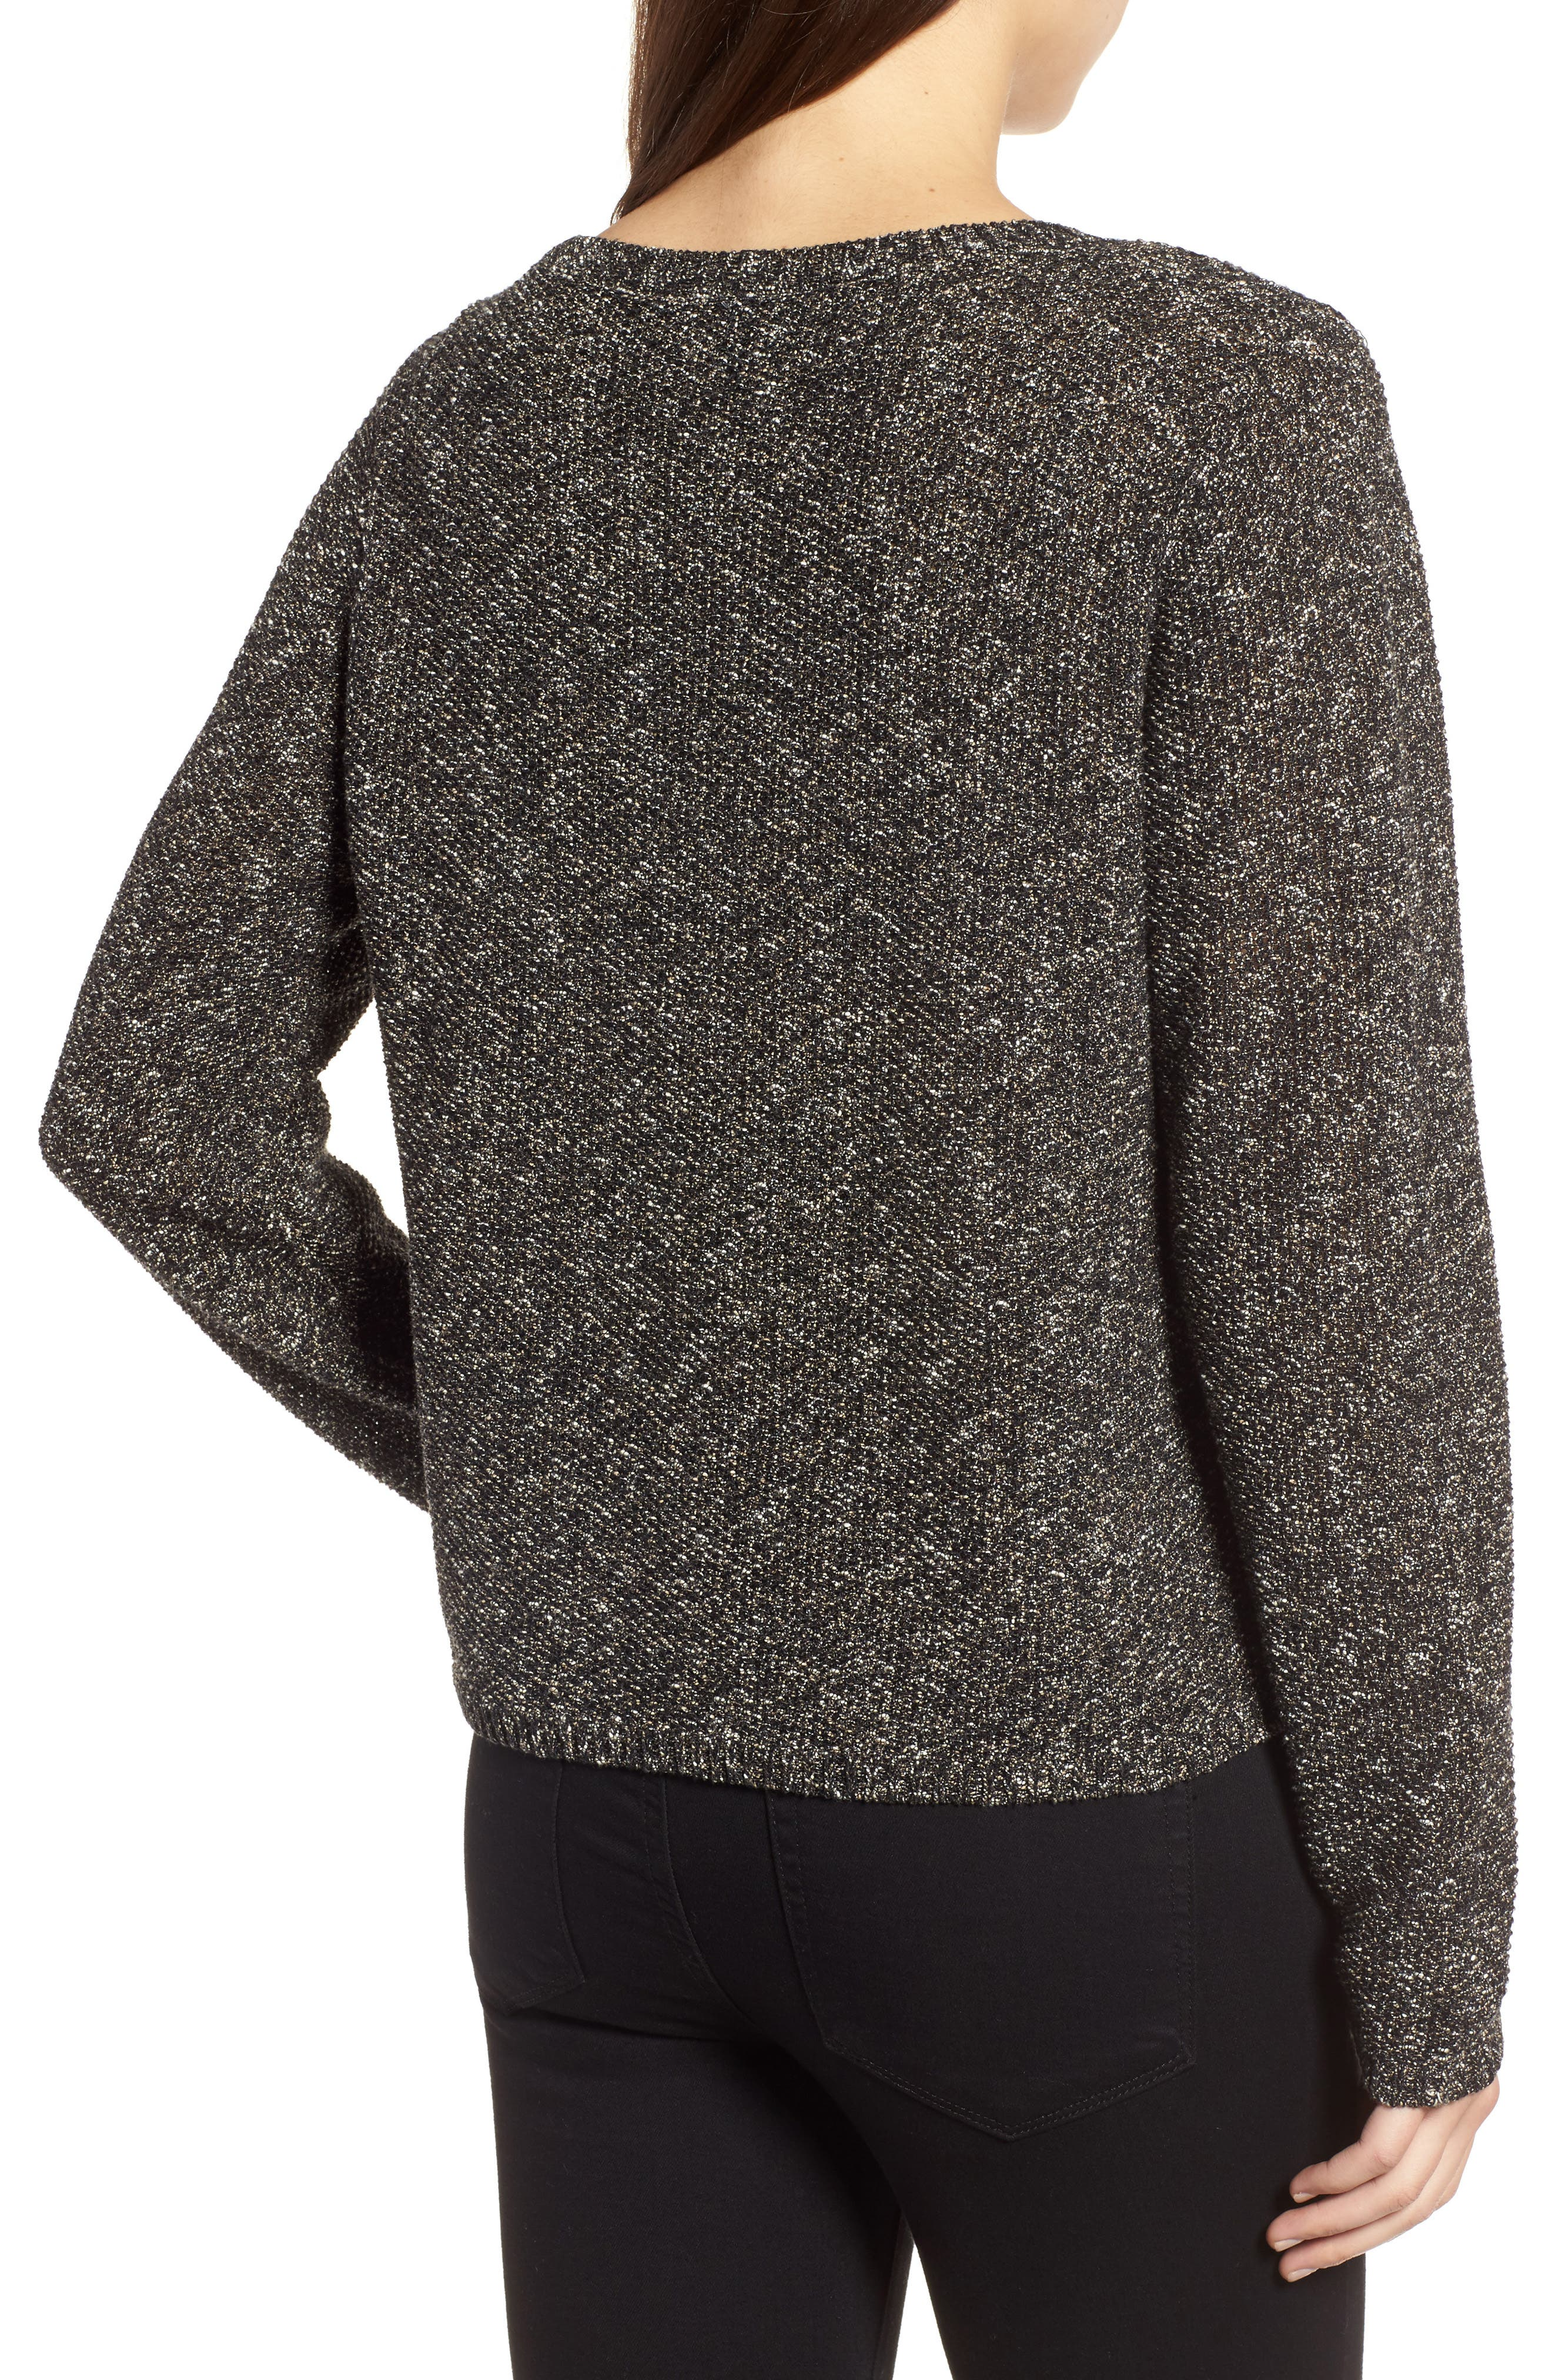 Tweed Knit Sweater,                             Alternate thumbnail 2, color,